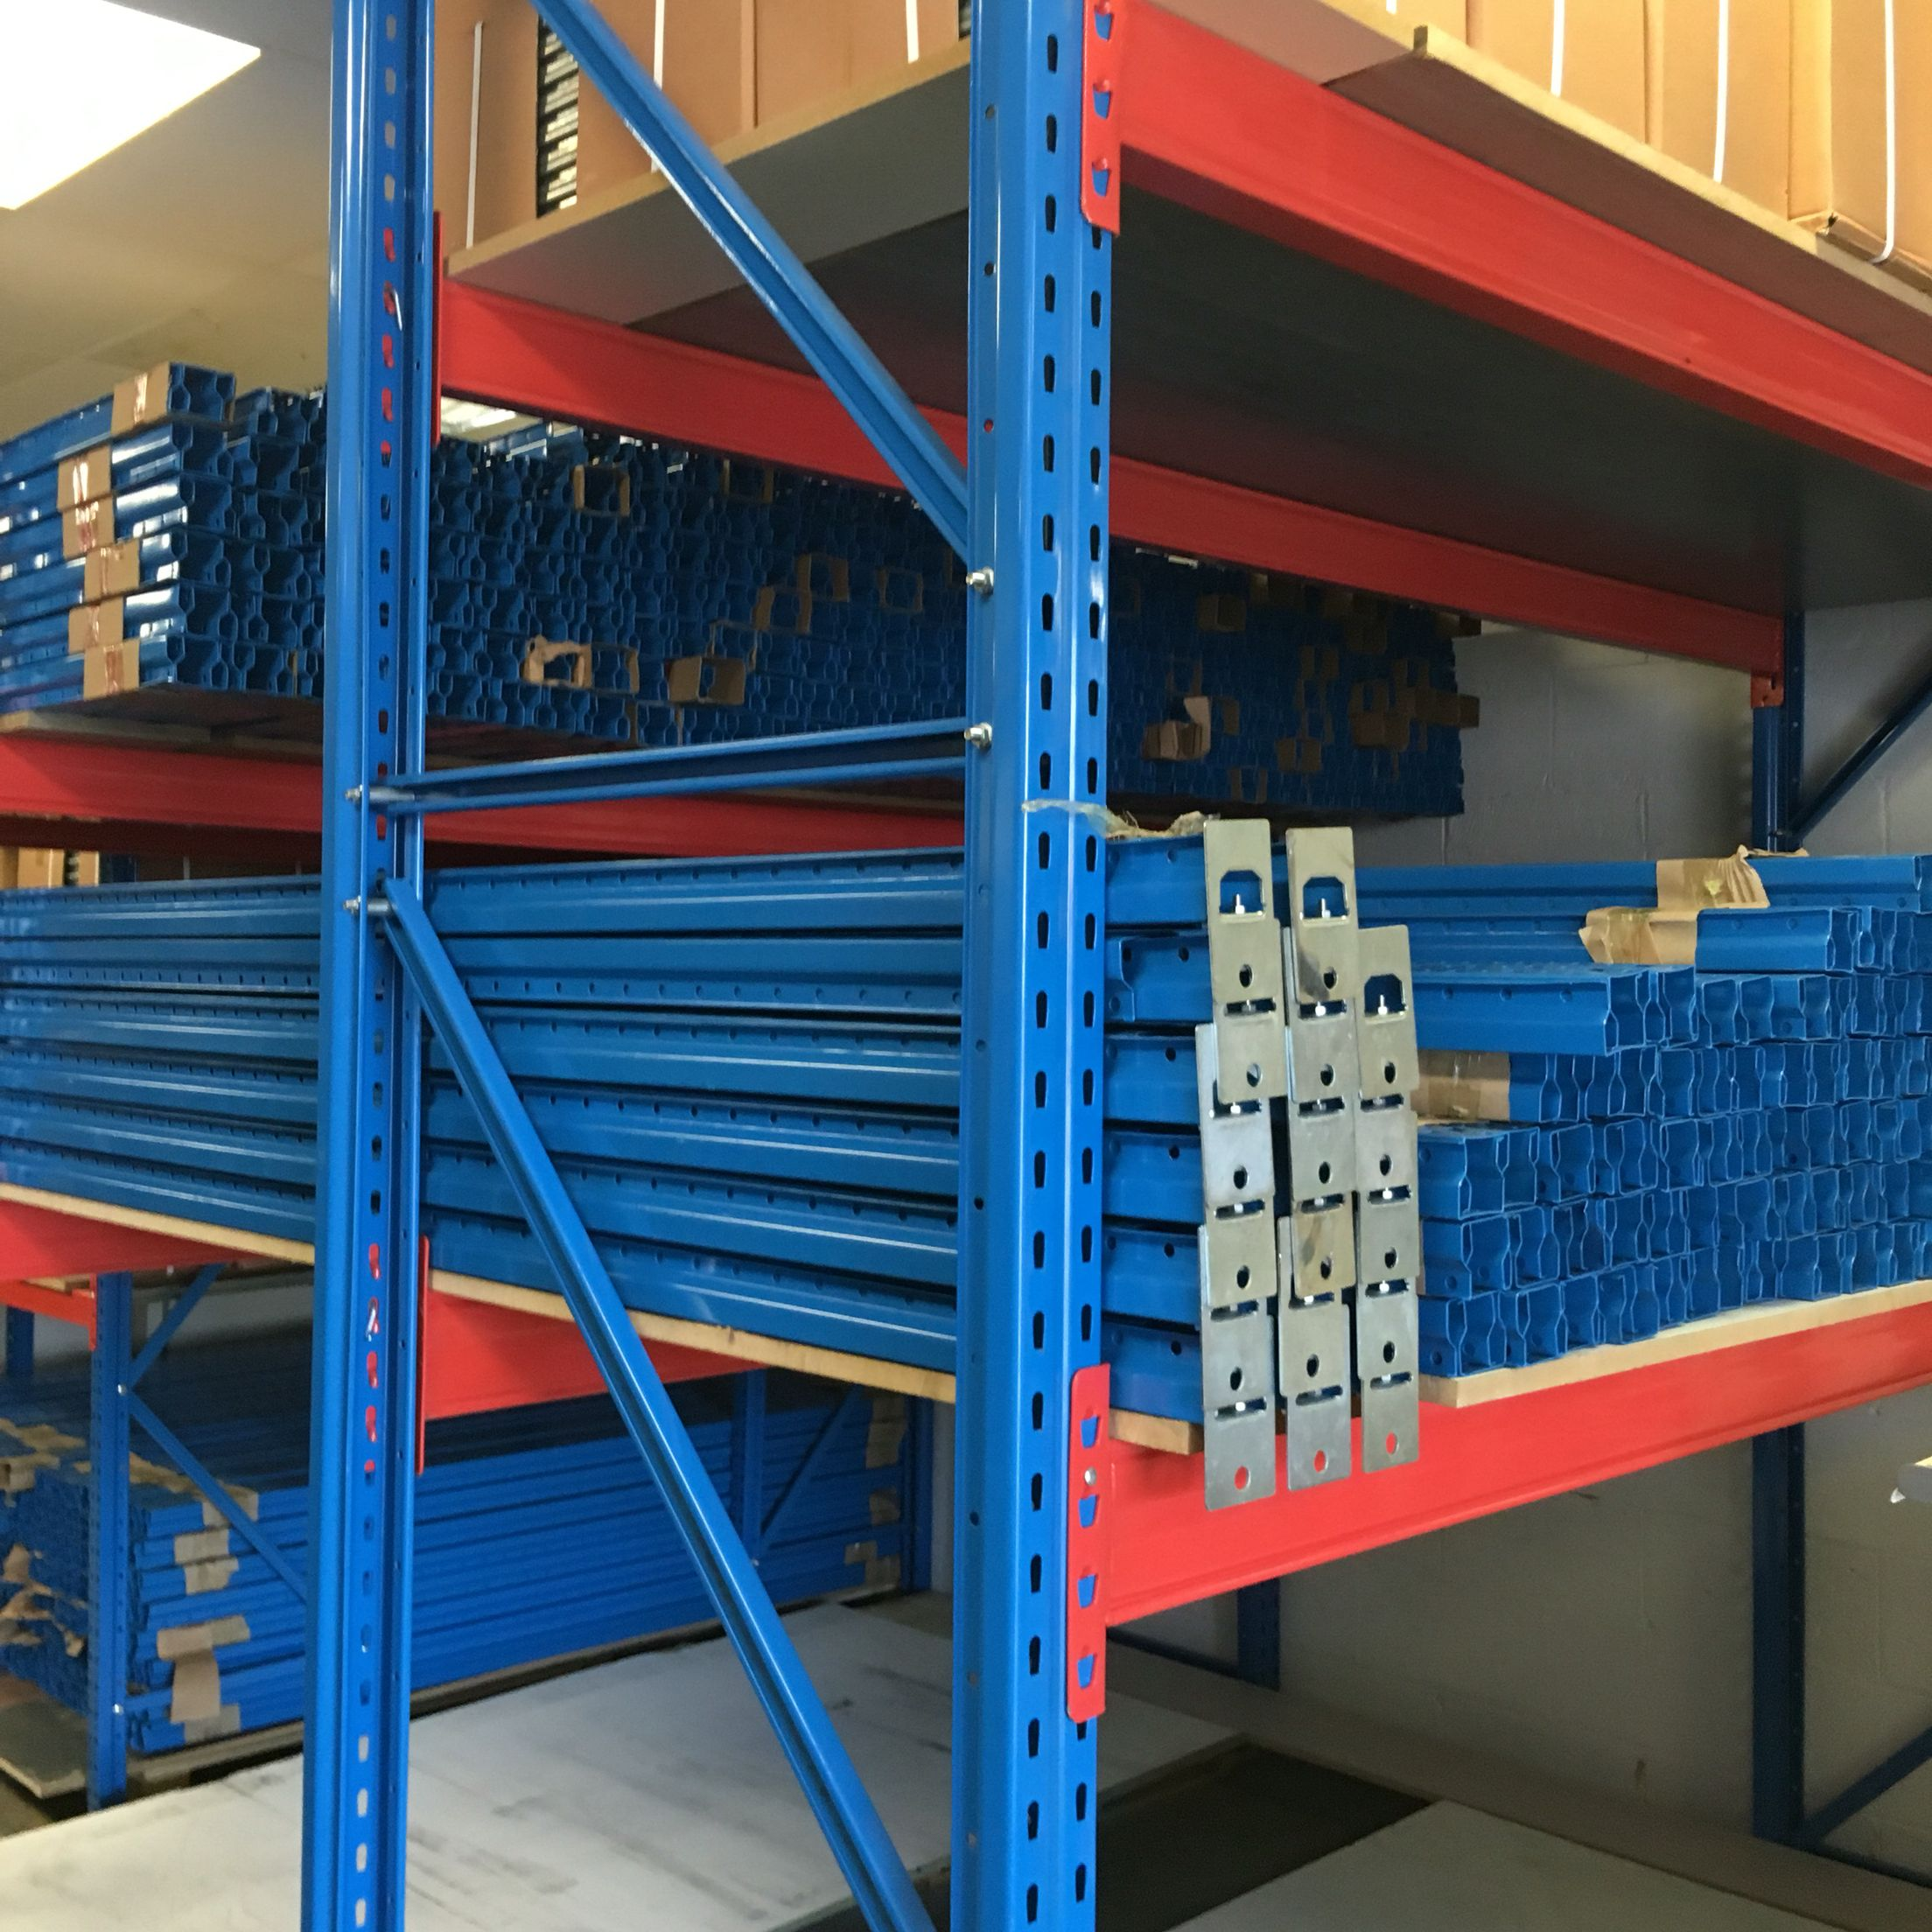 Pallet Racking Now In Stock Next Day Delivery! Quality At